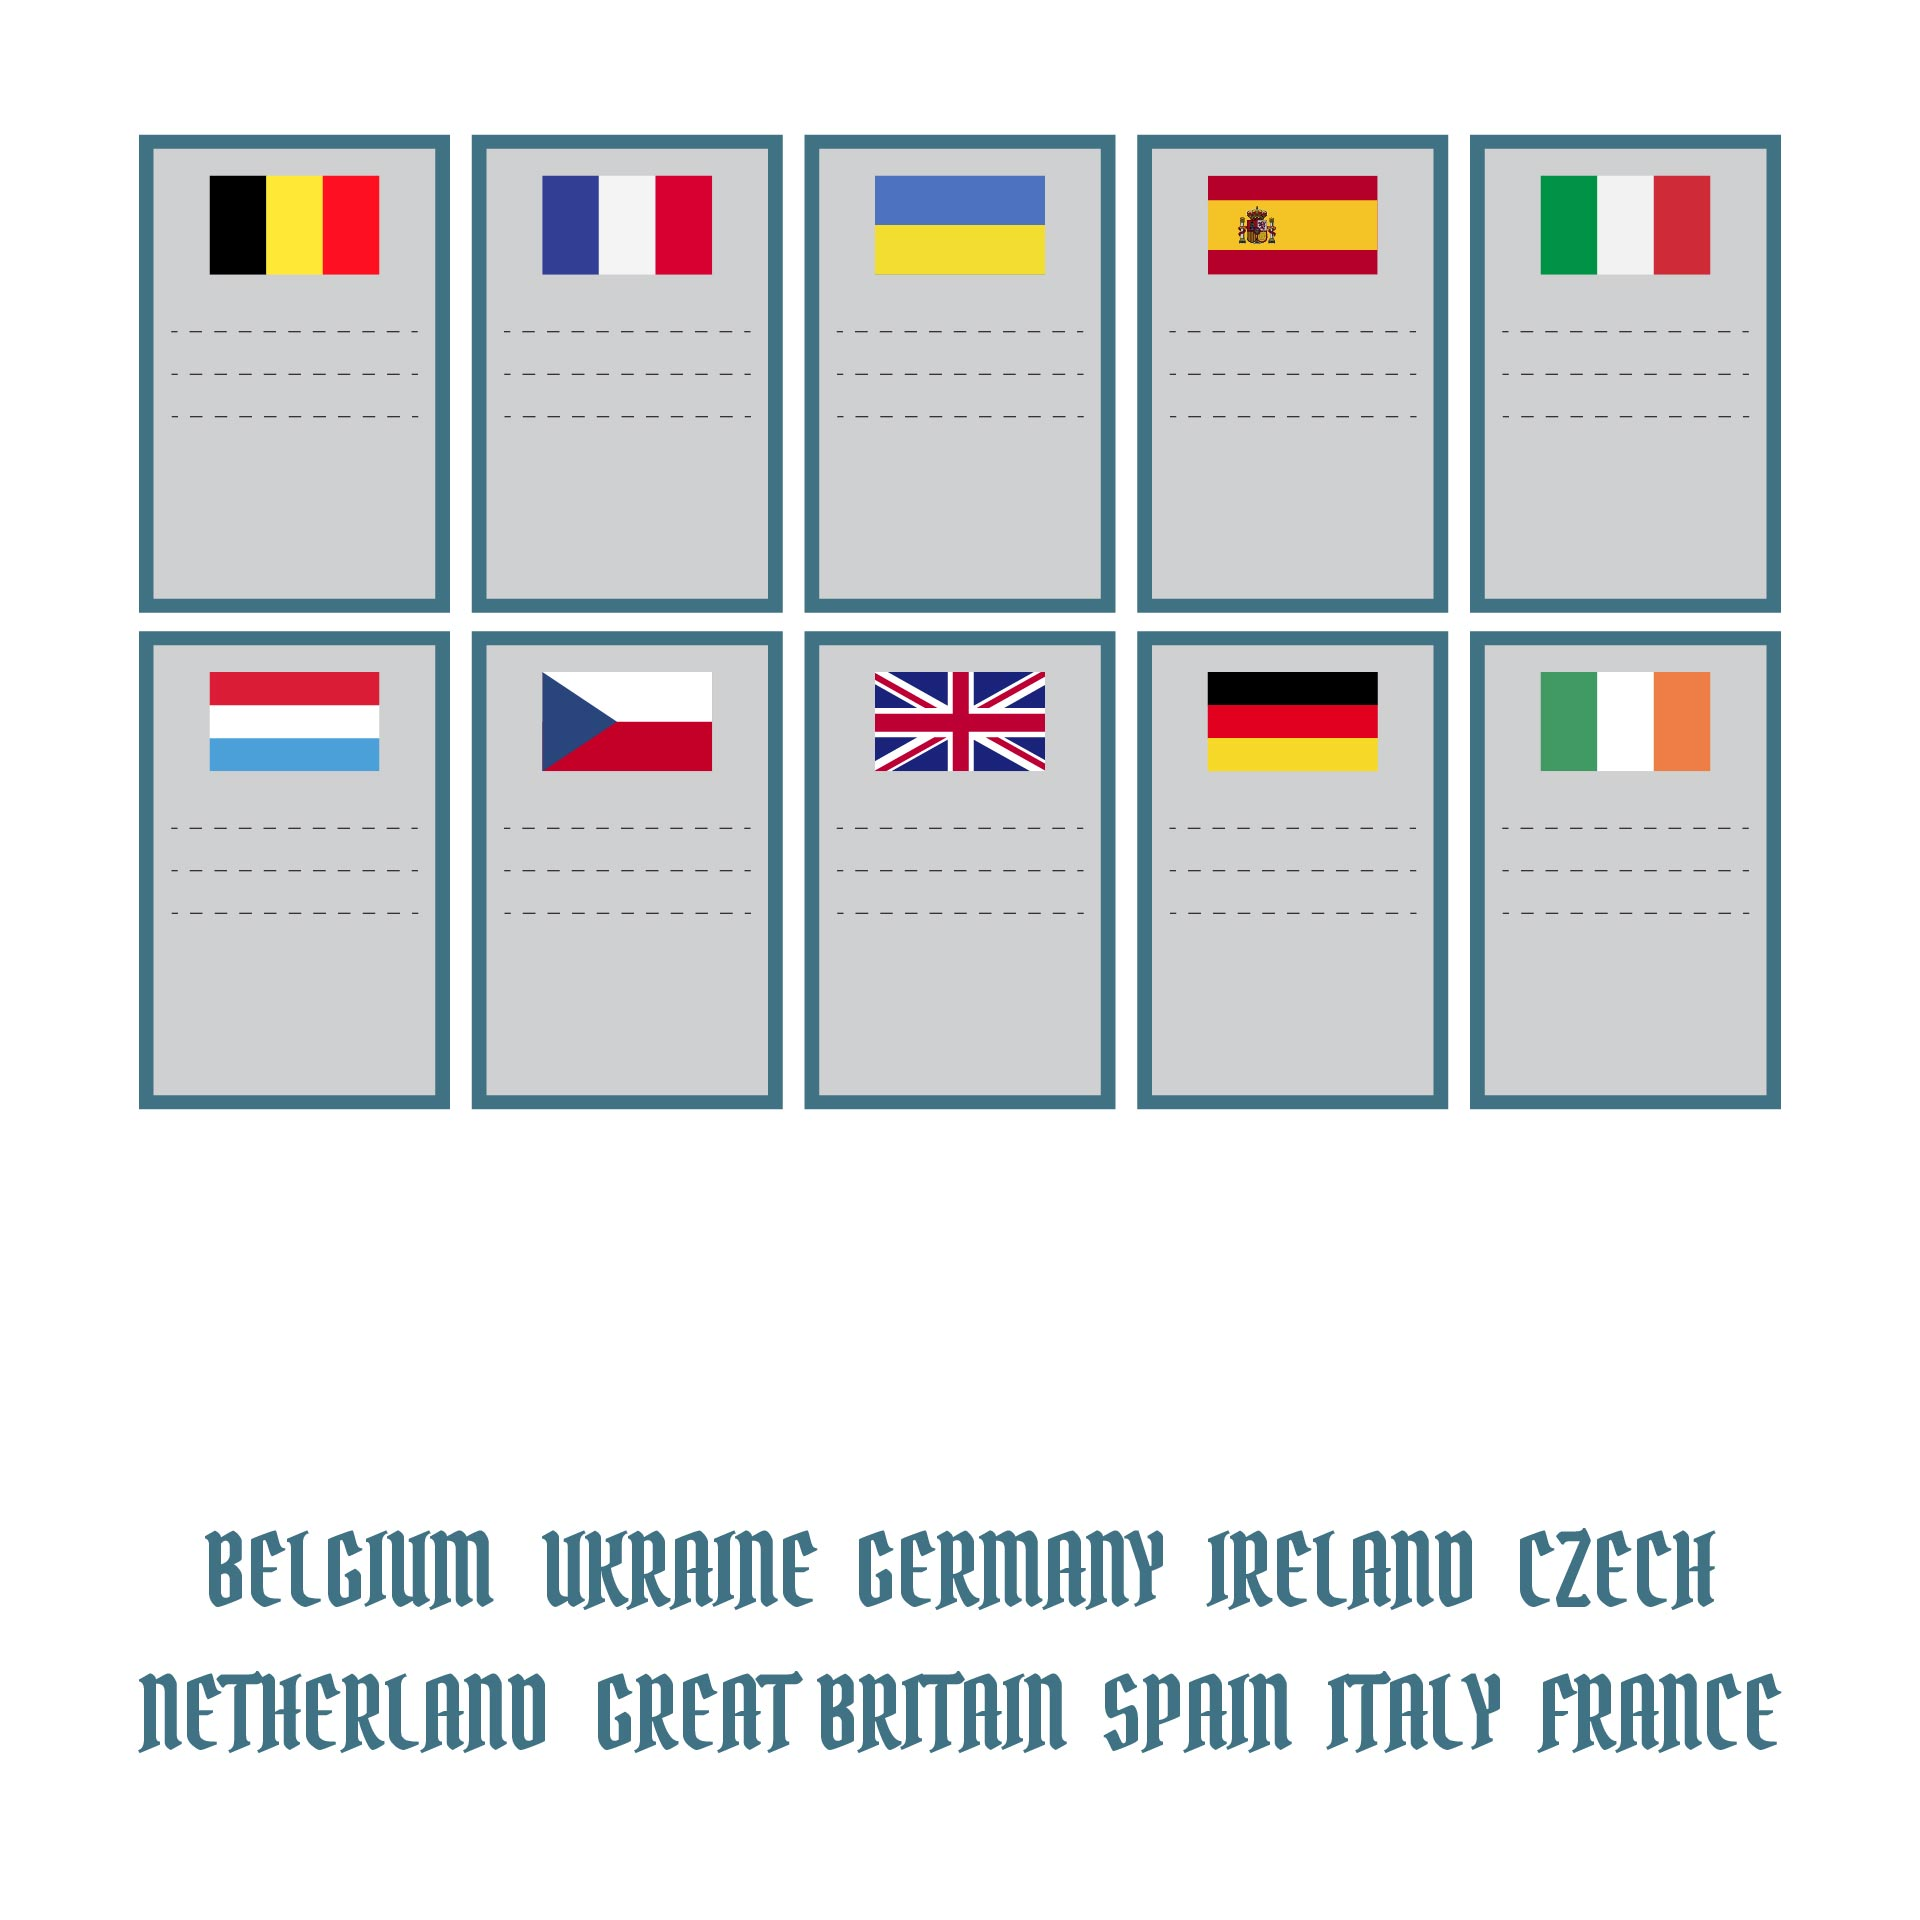 Printable Matching Game For Seniors With Countries Flags Print And Cut Out The Cards